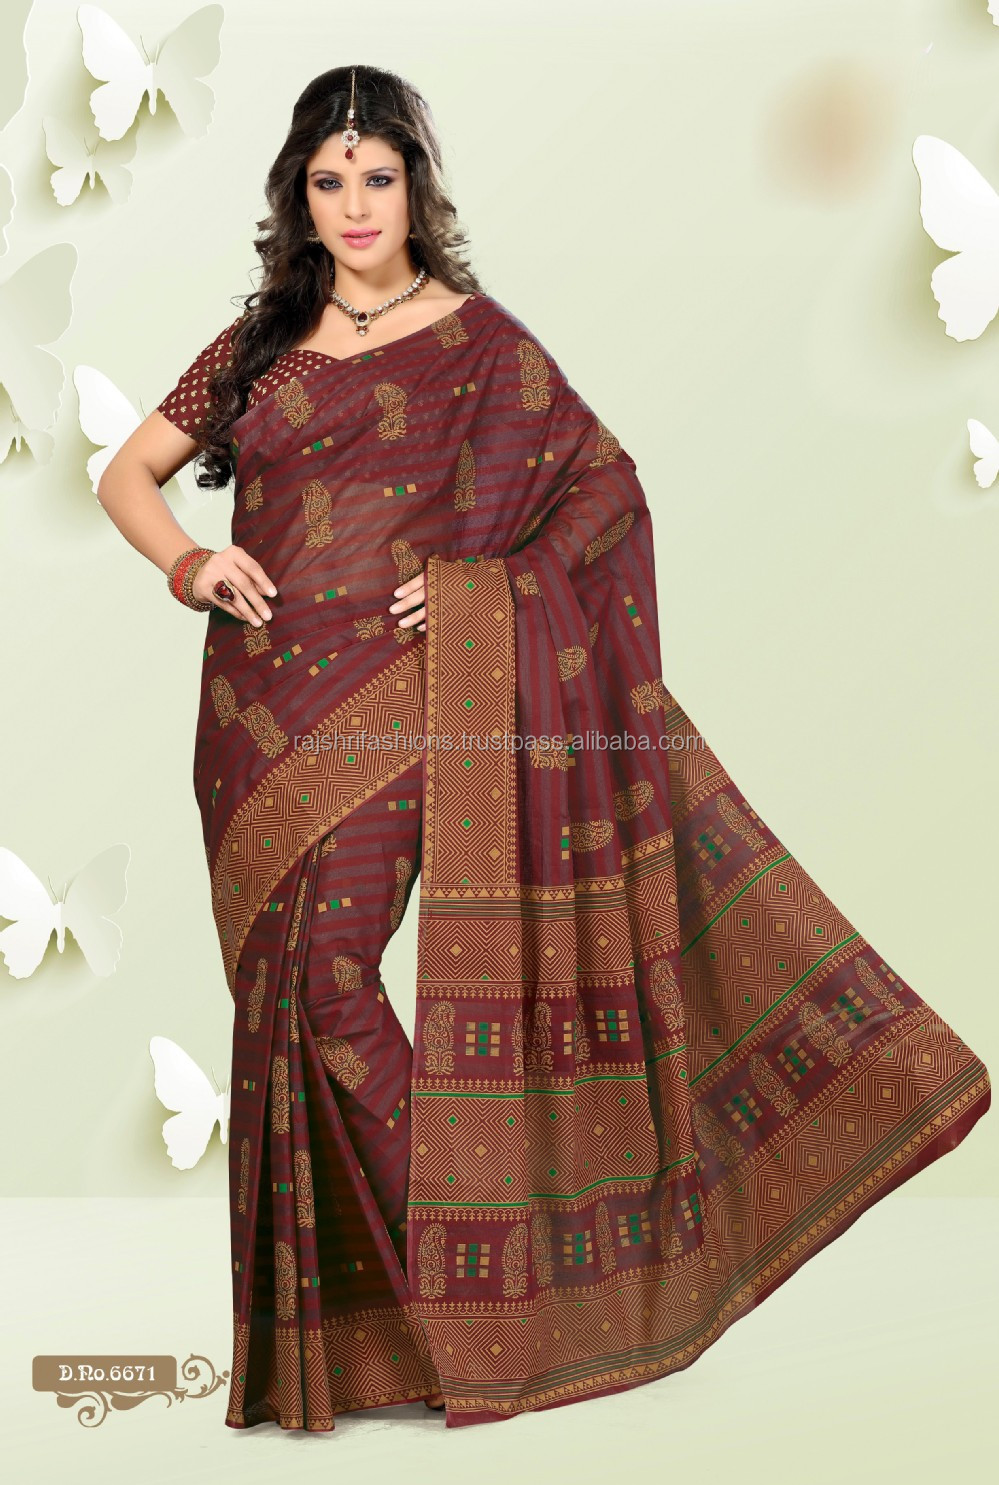 Aura Super Star Cotton Sarees Casual And Simple Indian Cotton ...